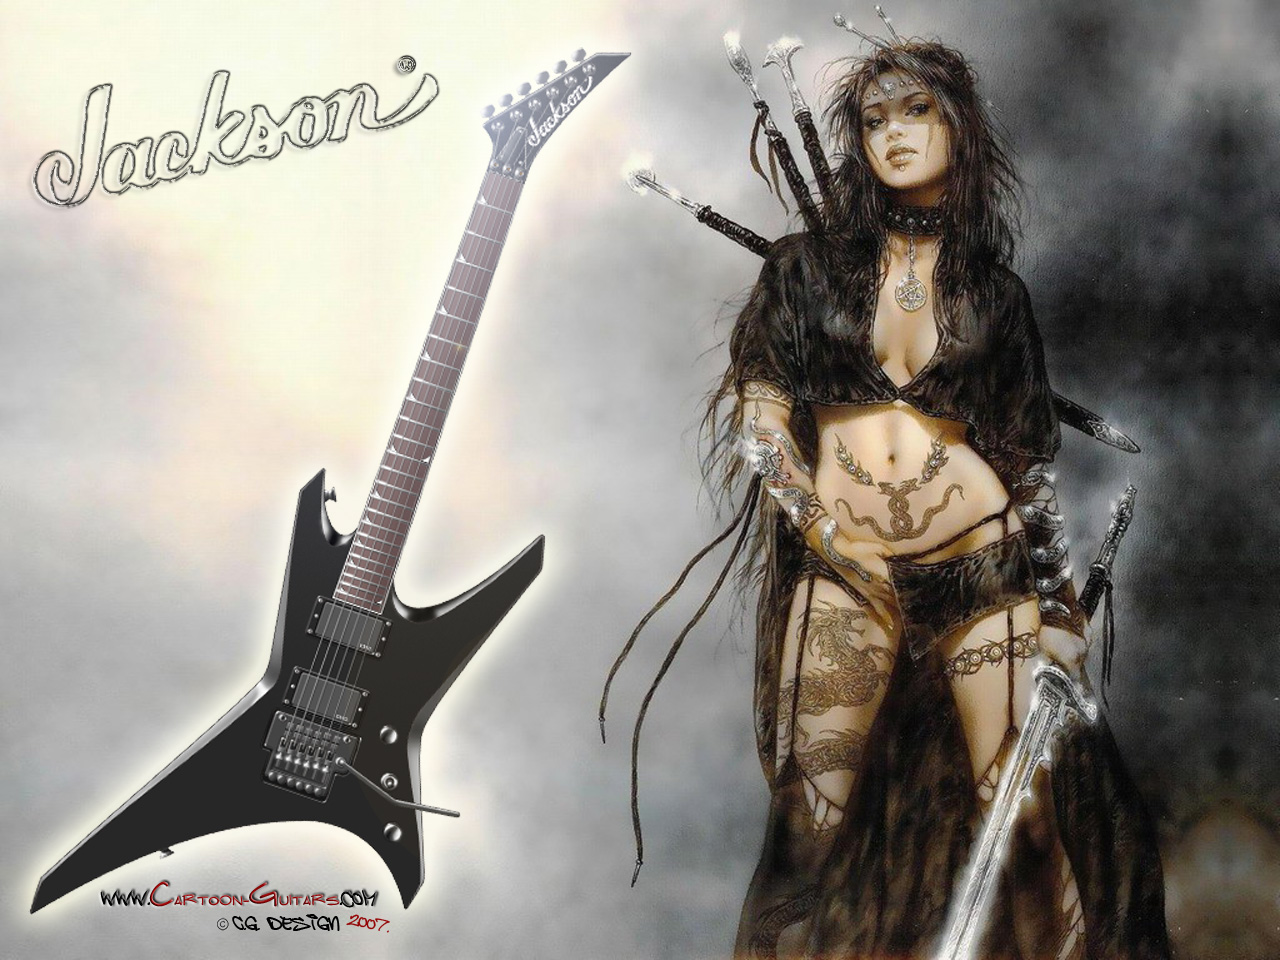 jackson_guitars_wallpaper_20090315_1420128806.jpg